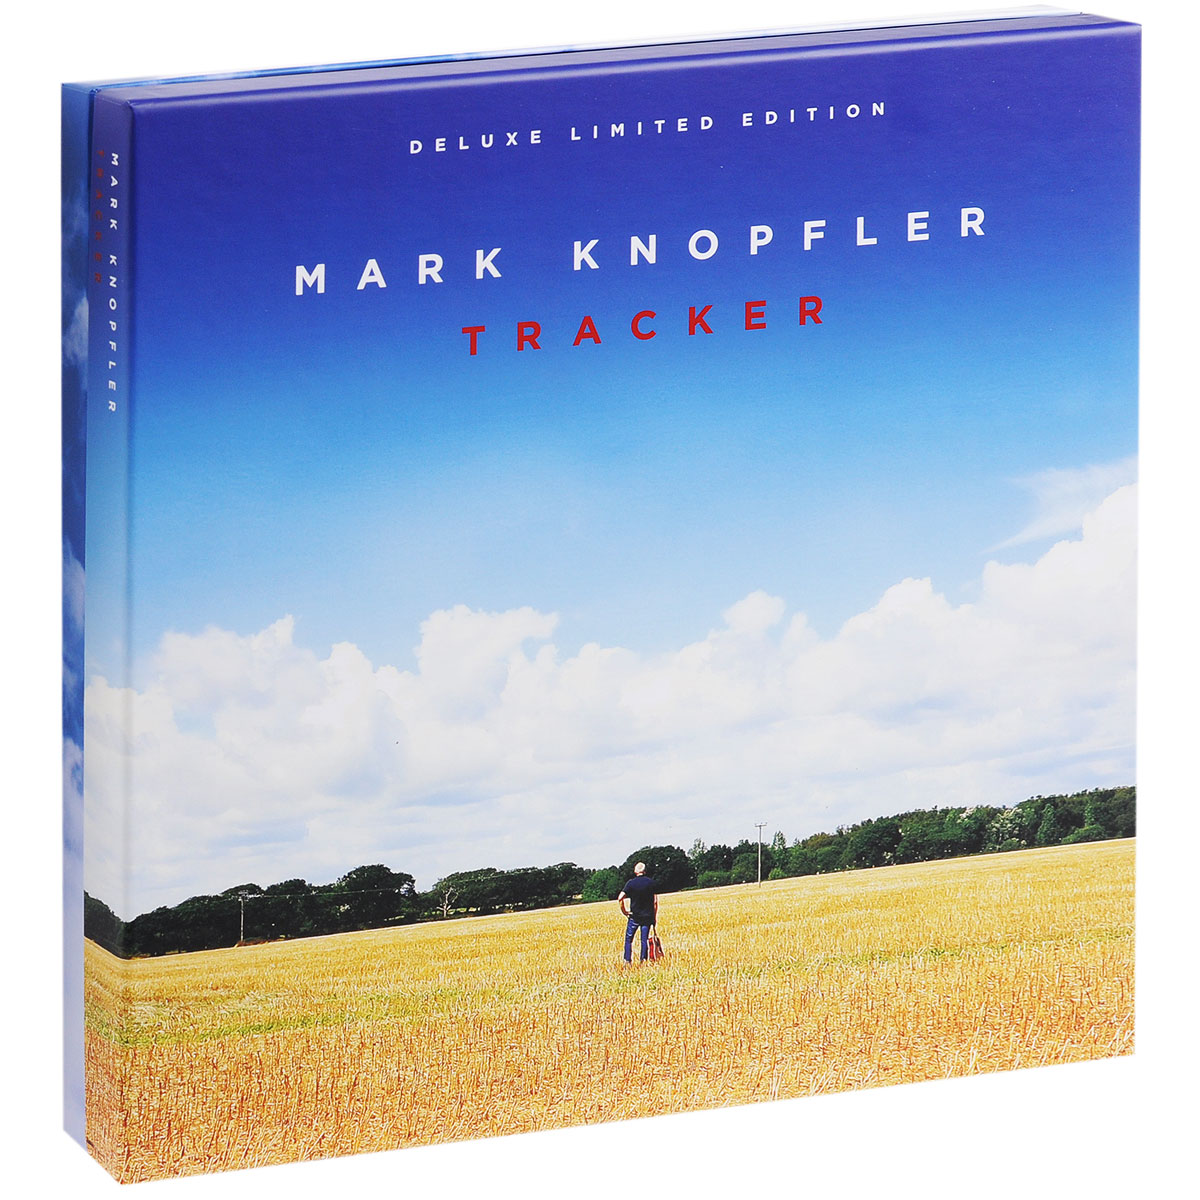 Марк Нопфлер Mark Knopfler. Tracker. Deluxe Limited Edition (2 CD + DVD + 2 LP)